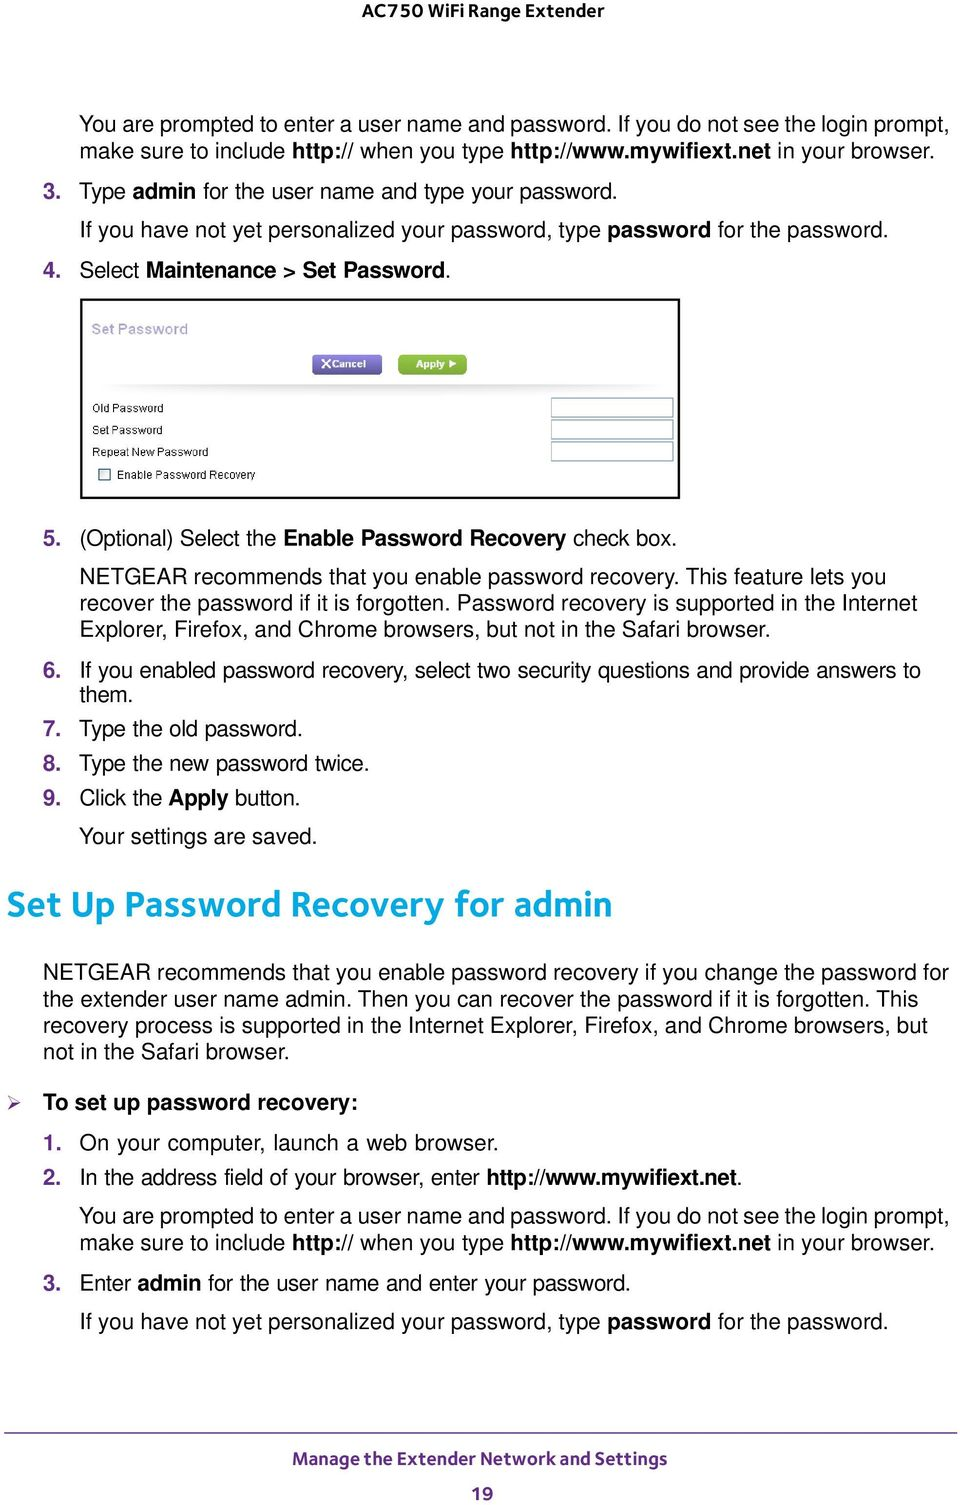 (Optional) Select the Enable Password Recovery check box. NETGEAR recommends that you enable password recovery. This feature lets you recover the password if it is forgotten.